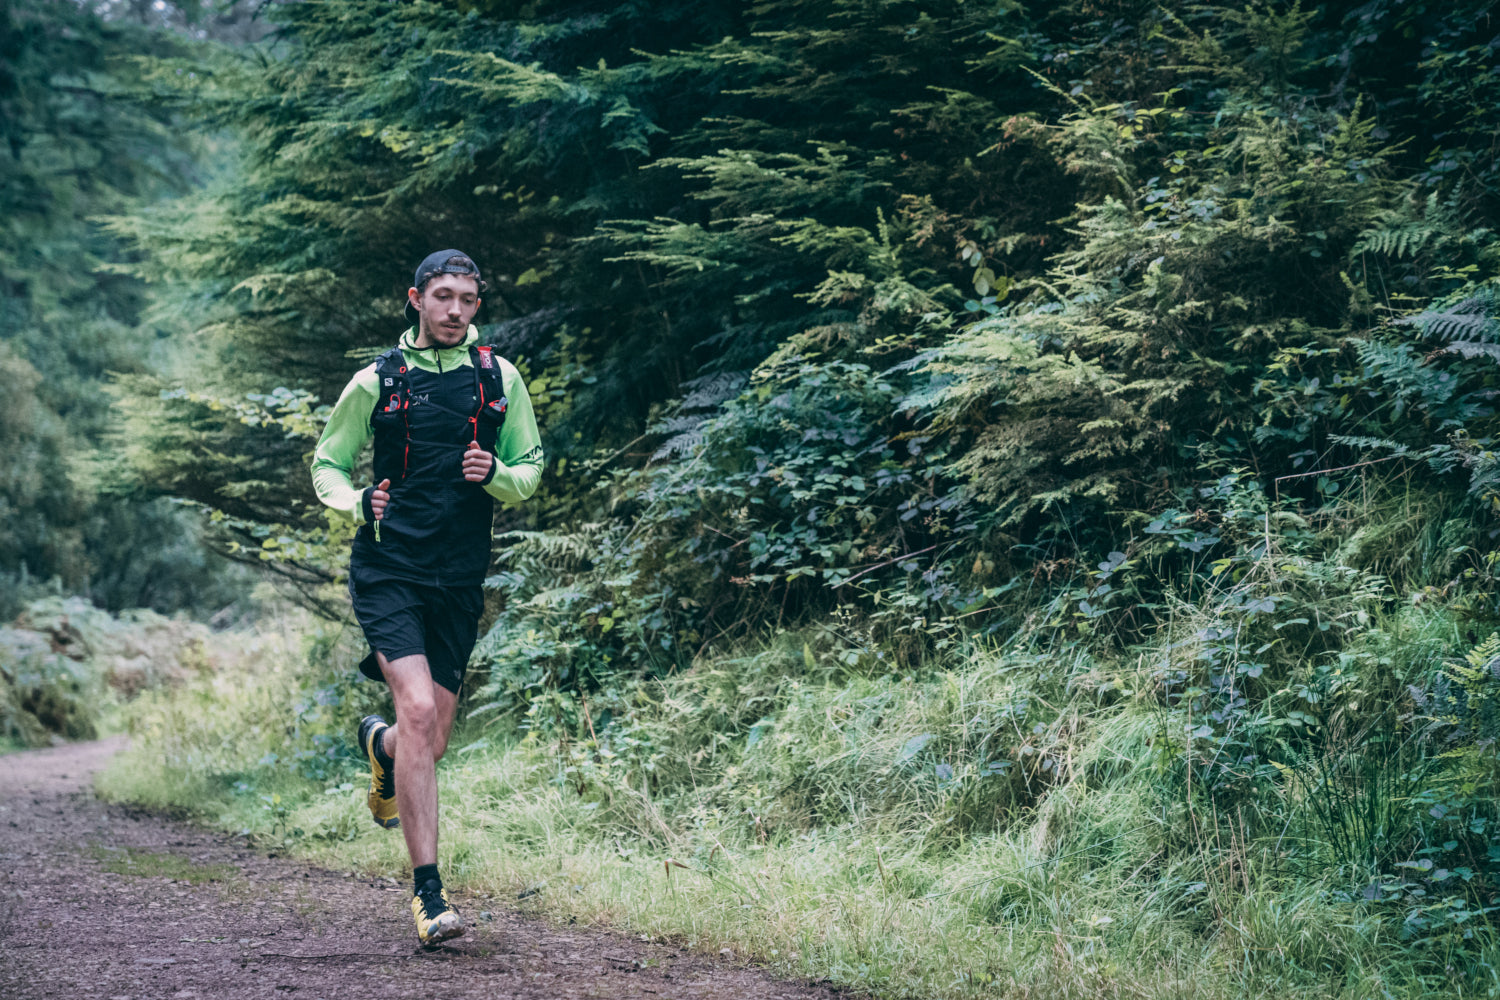 A trail runner heads along an off road path through the woods